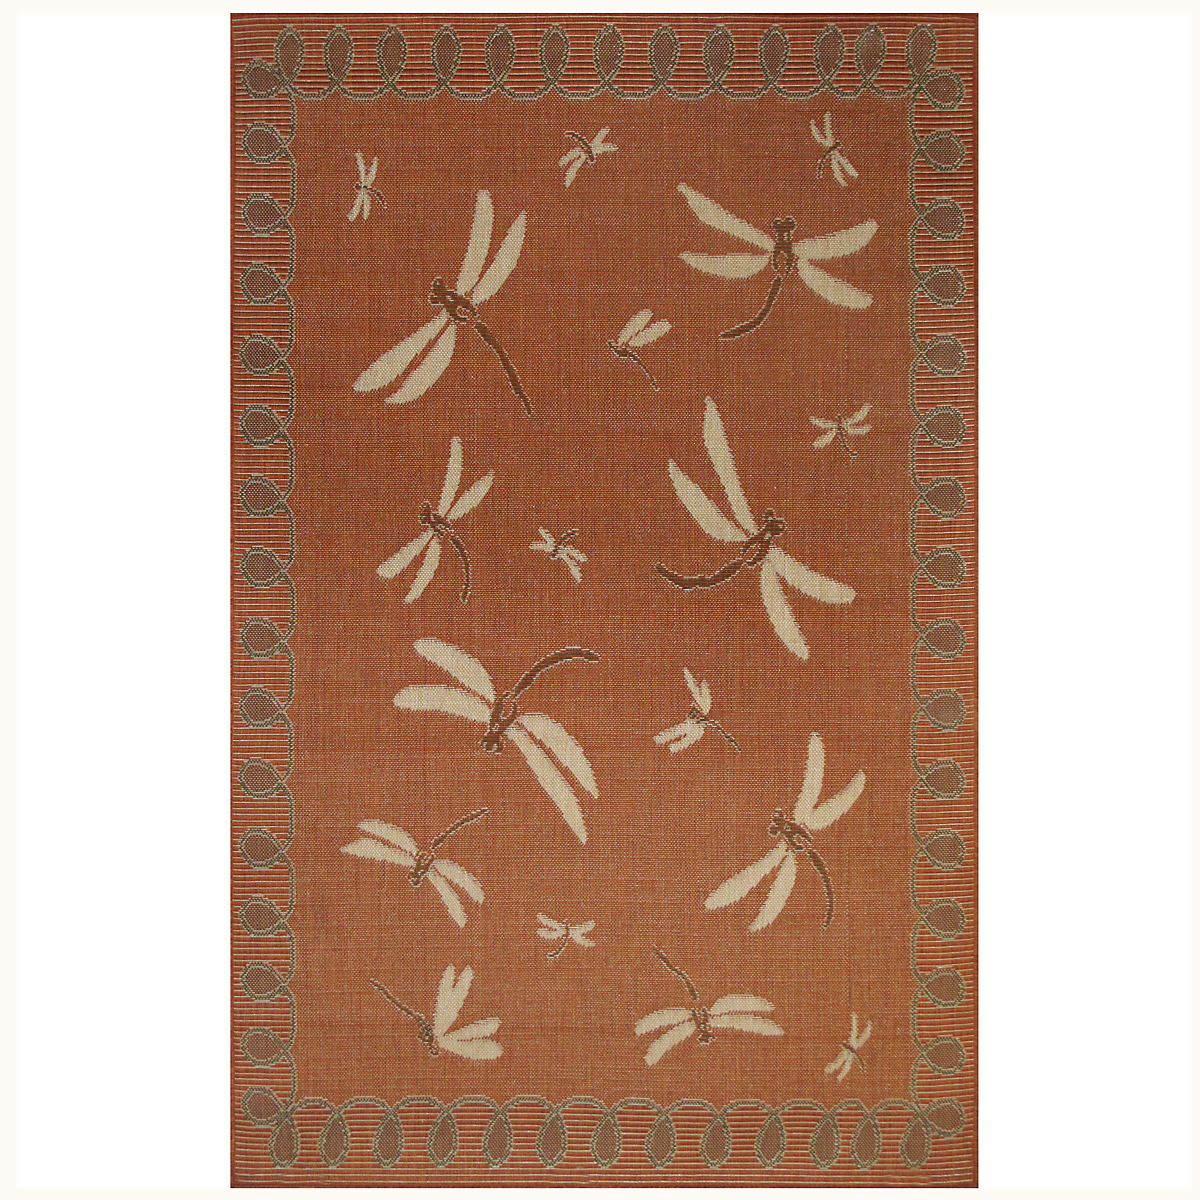 Dragonfly Rug, Terracotta